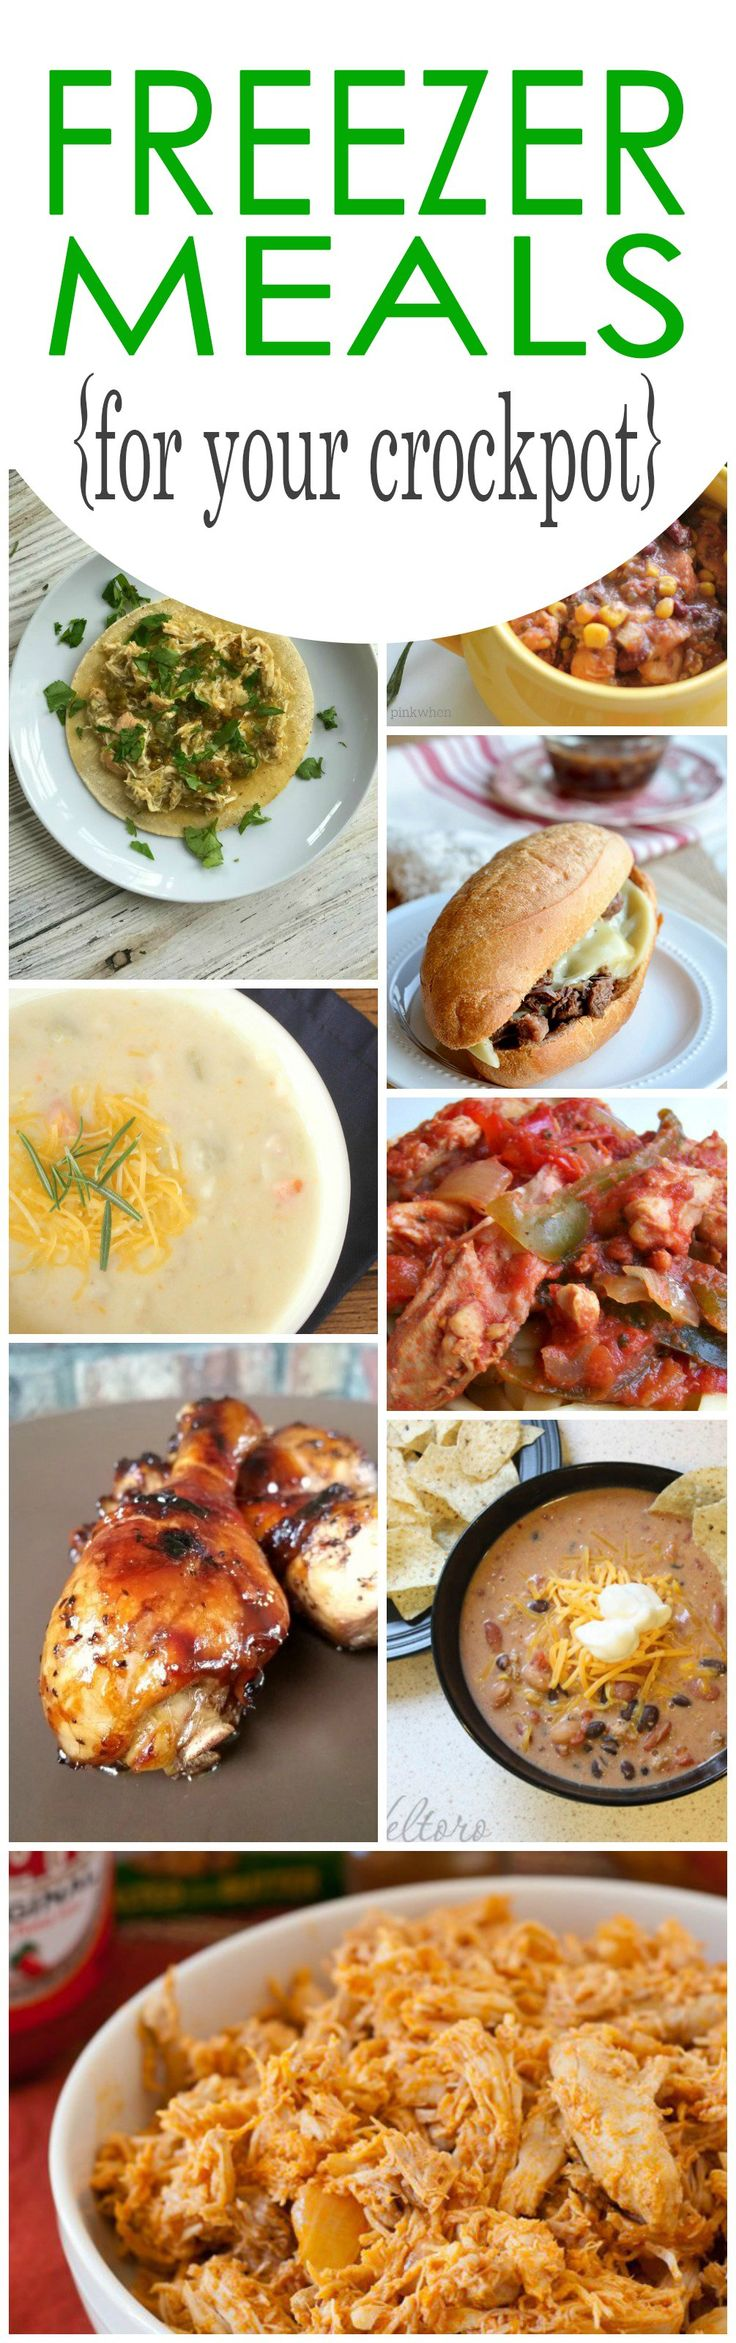 Freezer Meals for Your Crockpot! Easy and Simple Meal Ideas for Dinner!